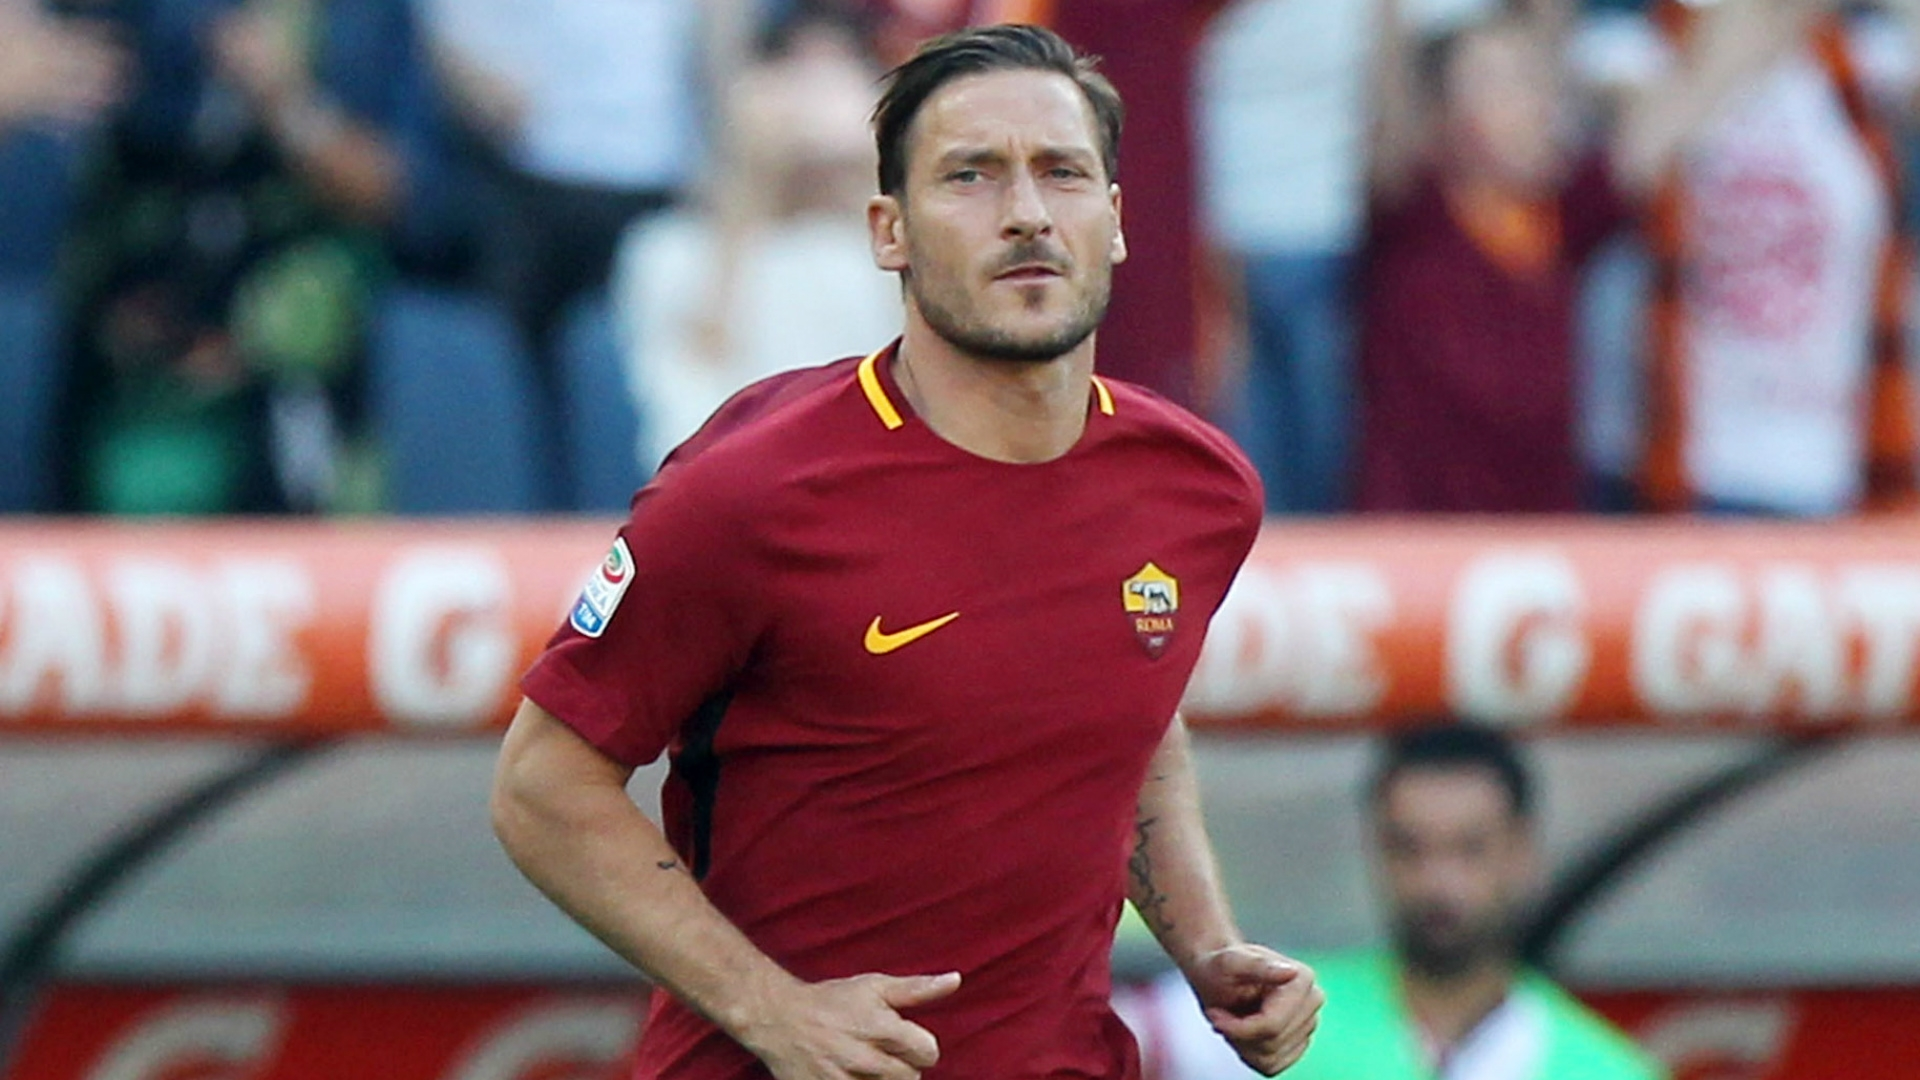 Totti broke many hearts of the AS Roma faithful when he announced his retirement at the end of last season. Totti is now 40